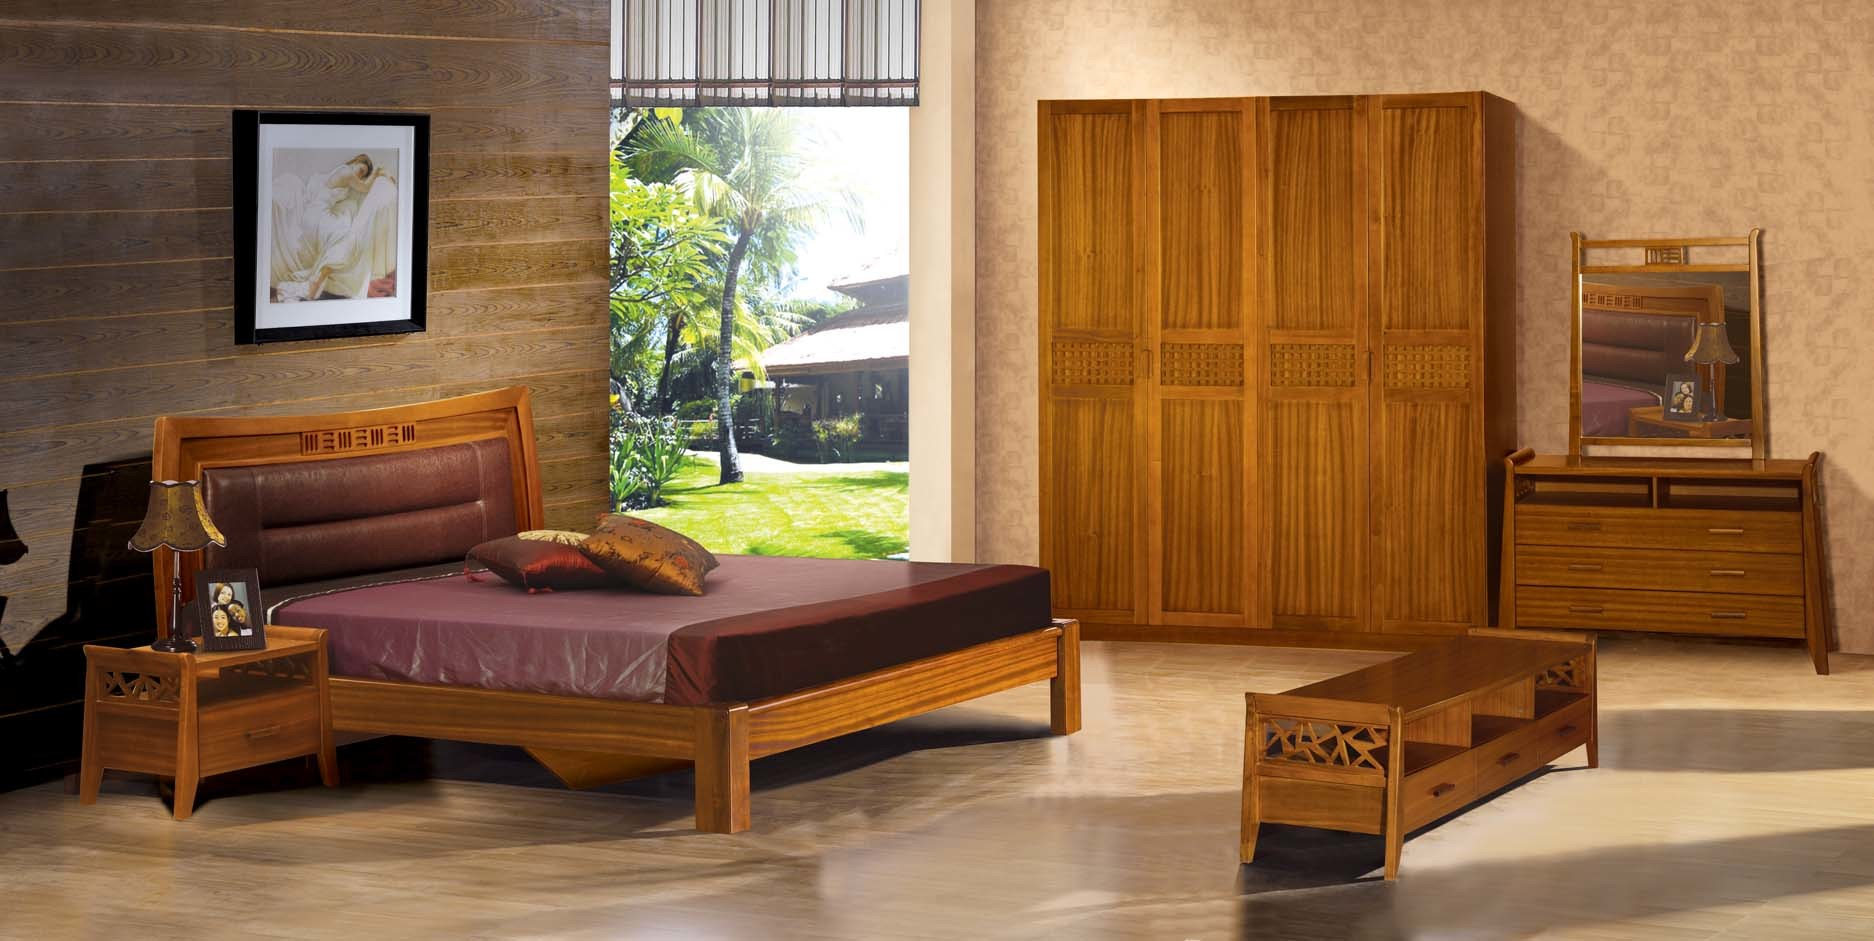 China teak wood bedroom set china bedroom set bedroom furniture Wooden furniture design for bedroom